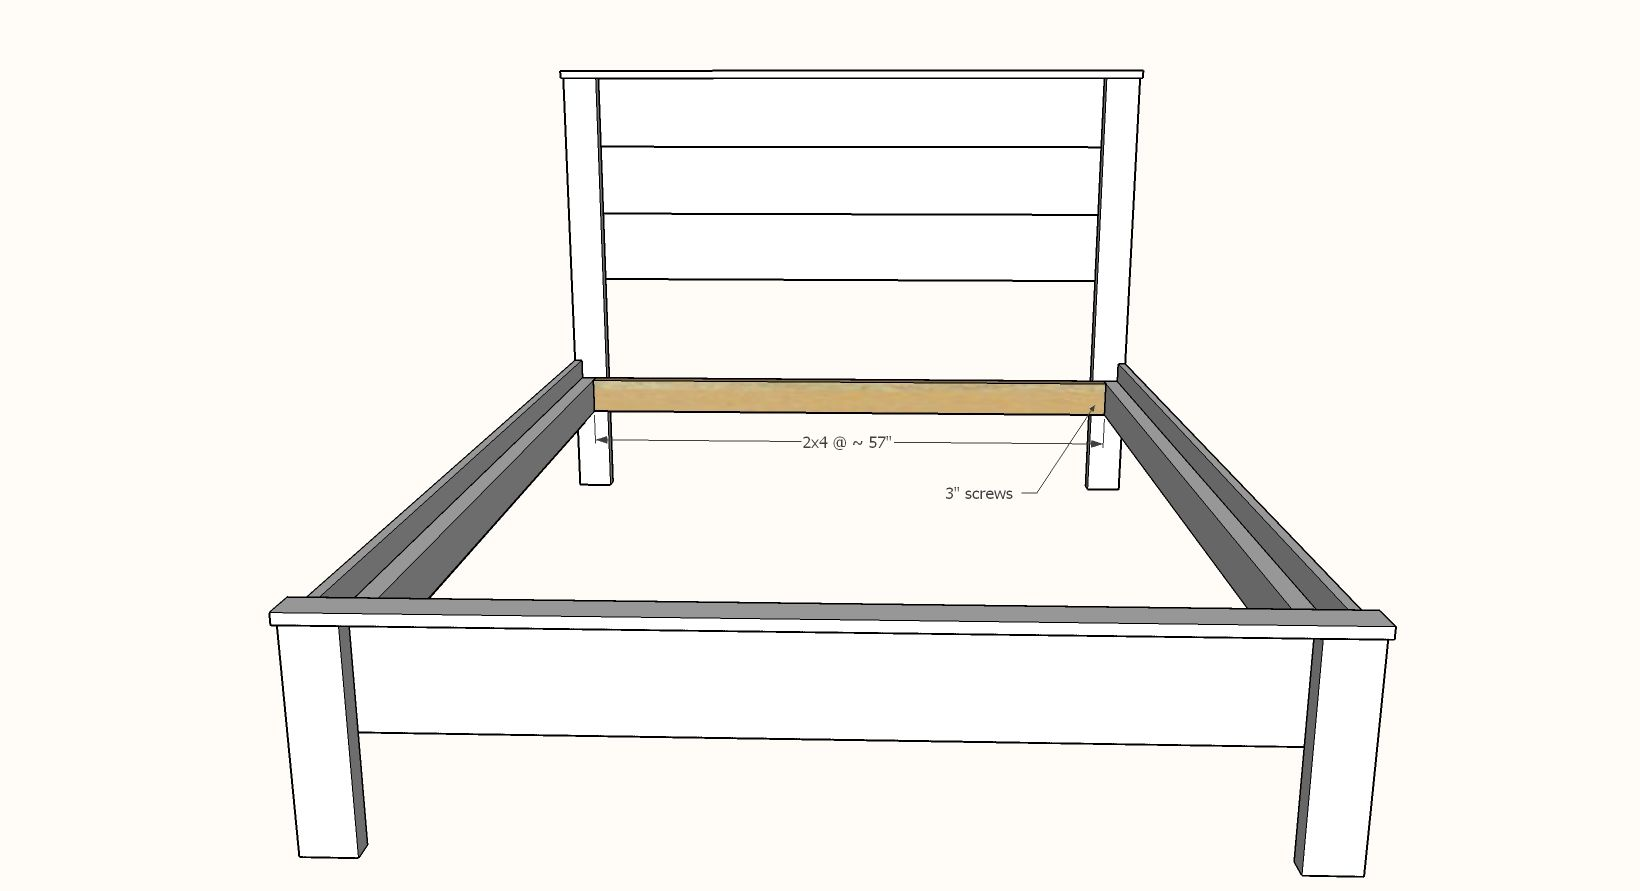 Simple Panel Bed All Mattress Sizes No Pocket Holes Panel Bed Frames Wood Bed Frame Bed Frame Plans